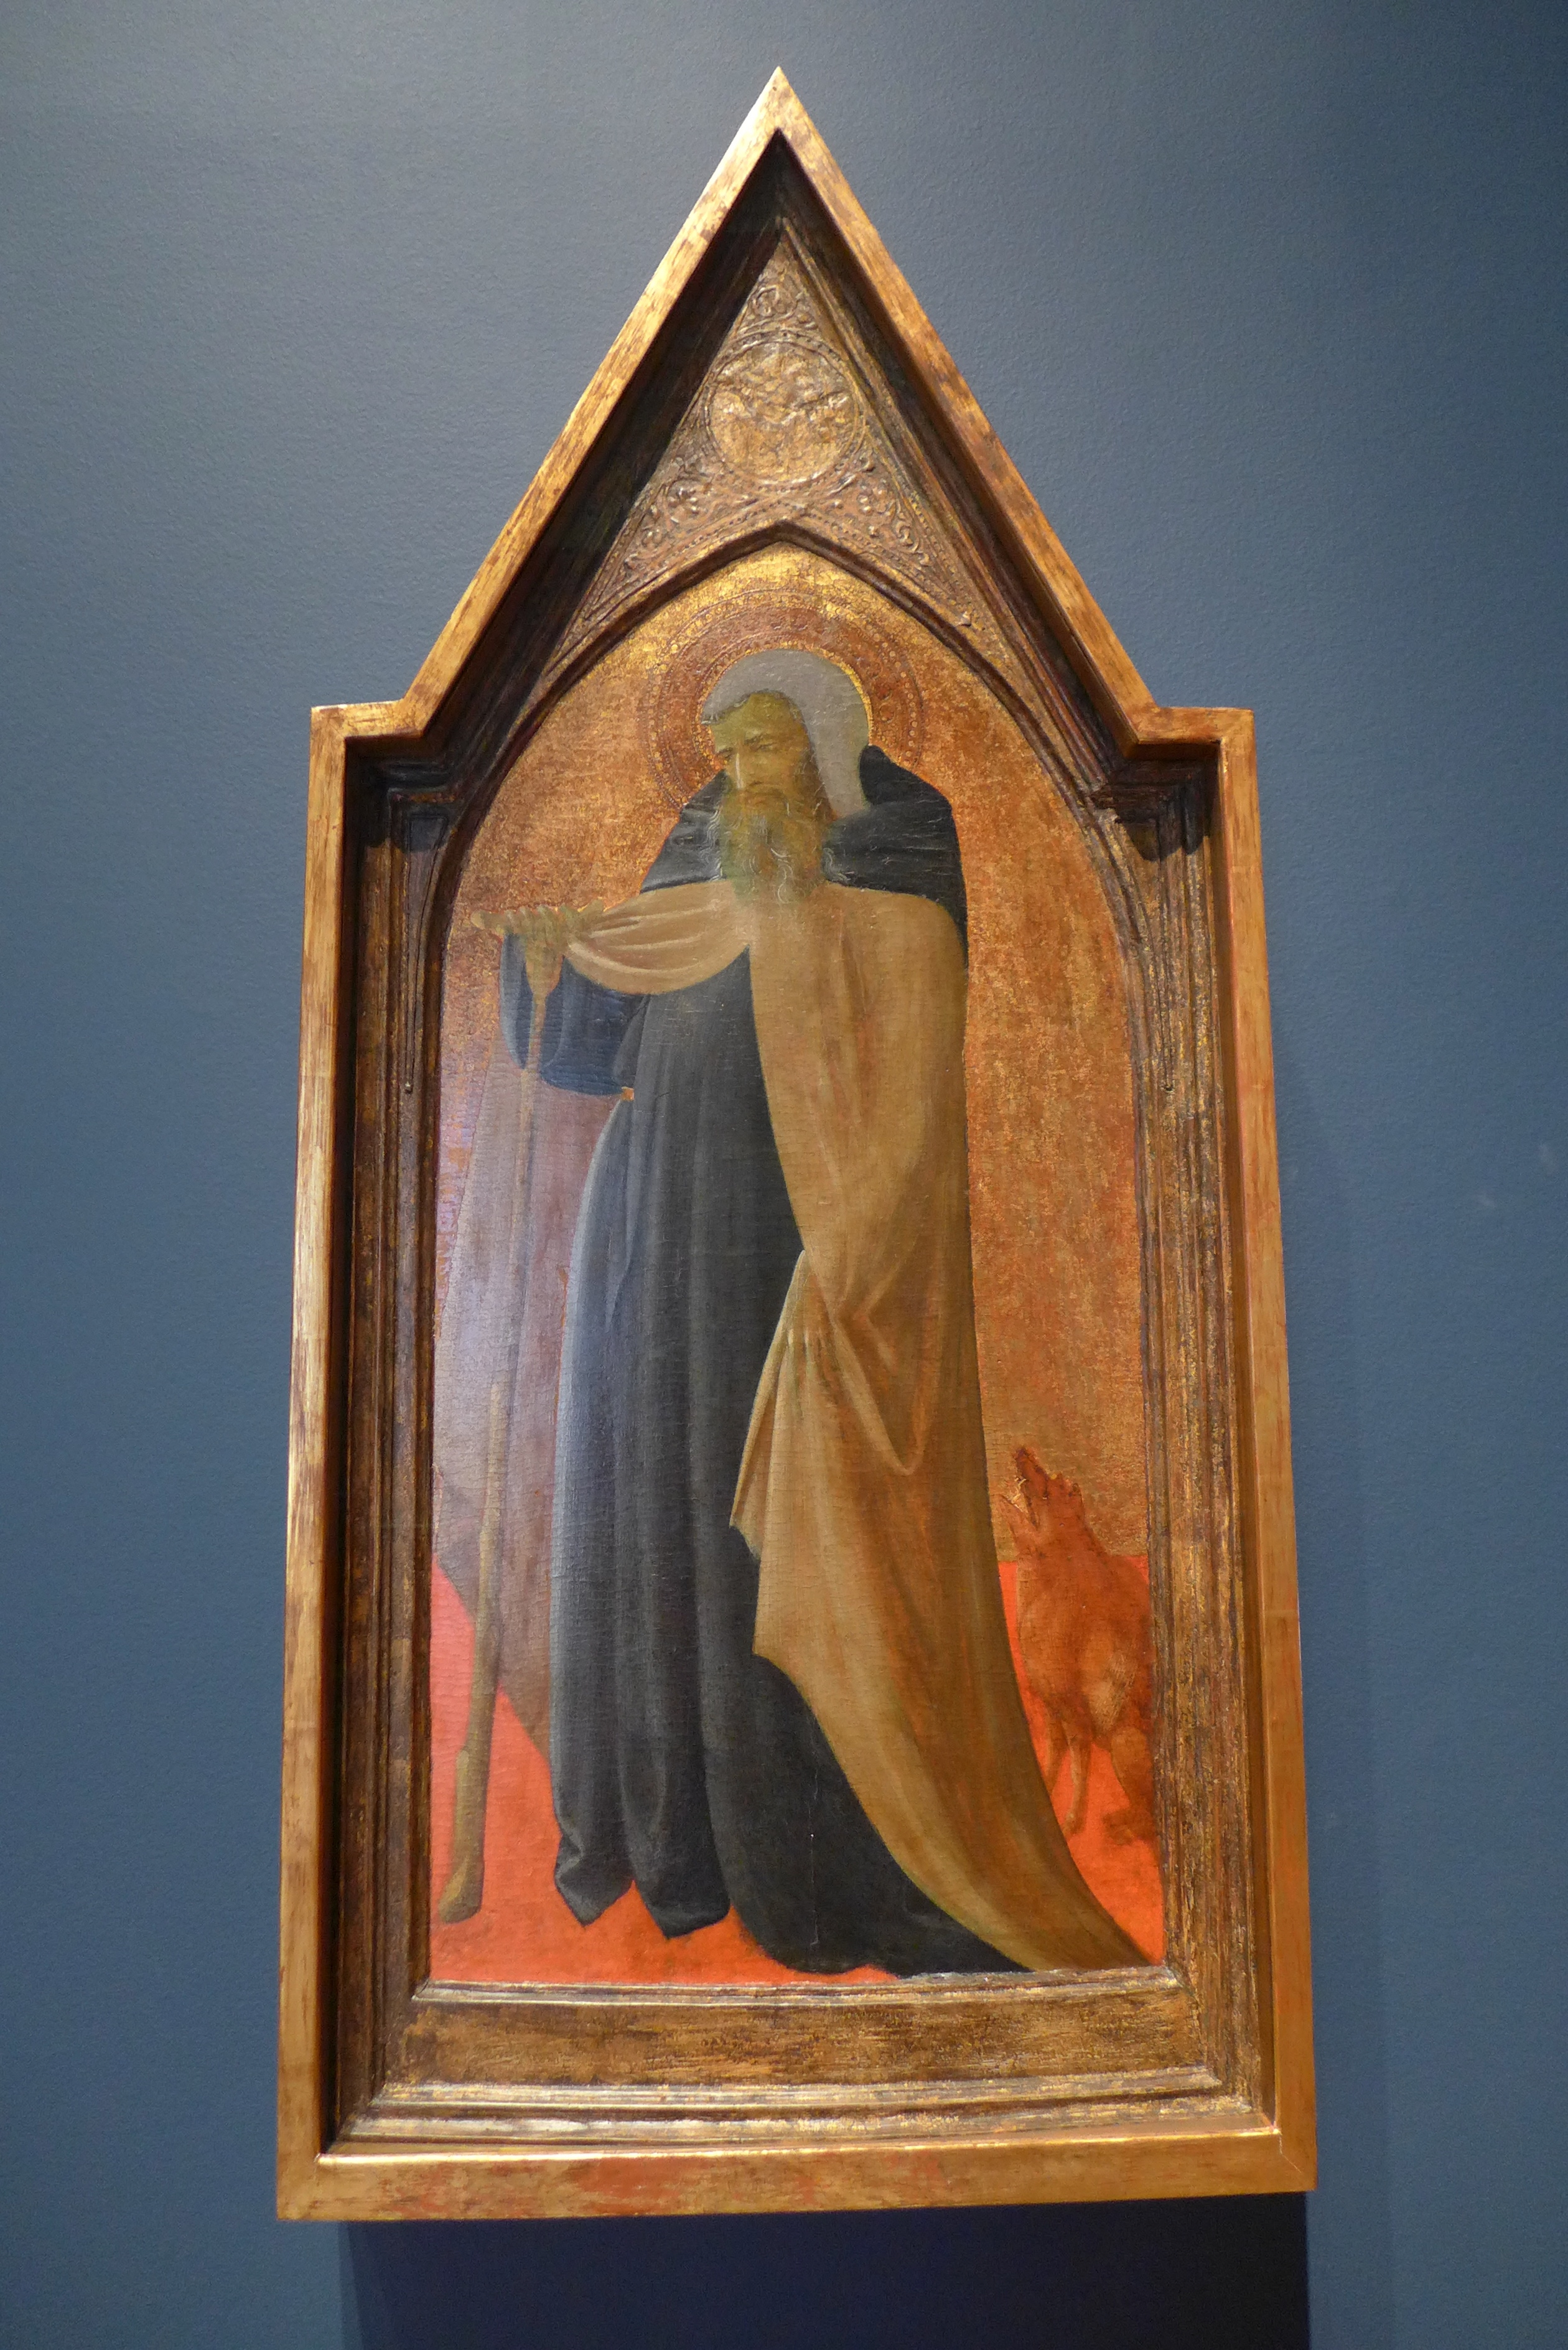 Saint Anthony turns towards his right. The shape of the painting is a pointed arch.